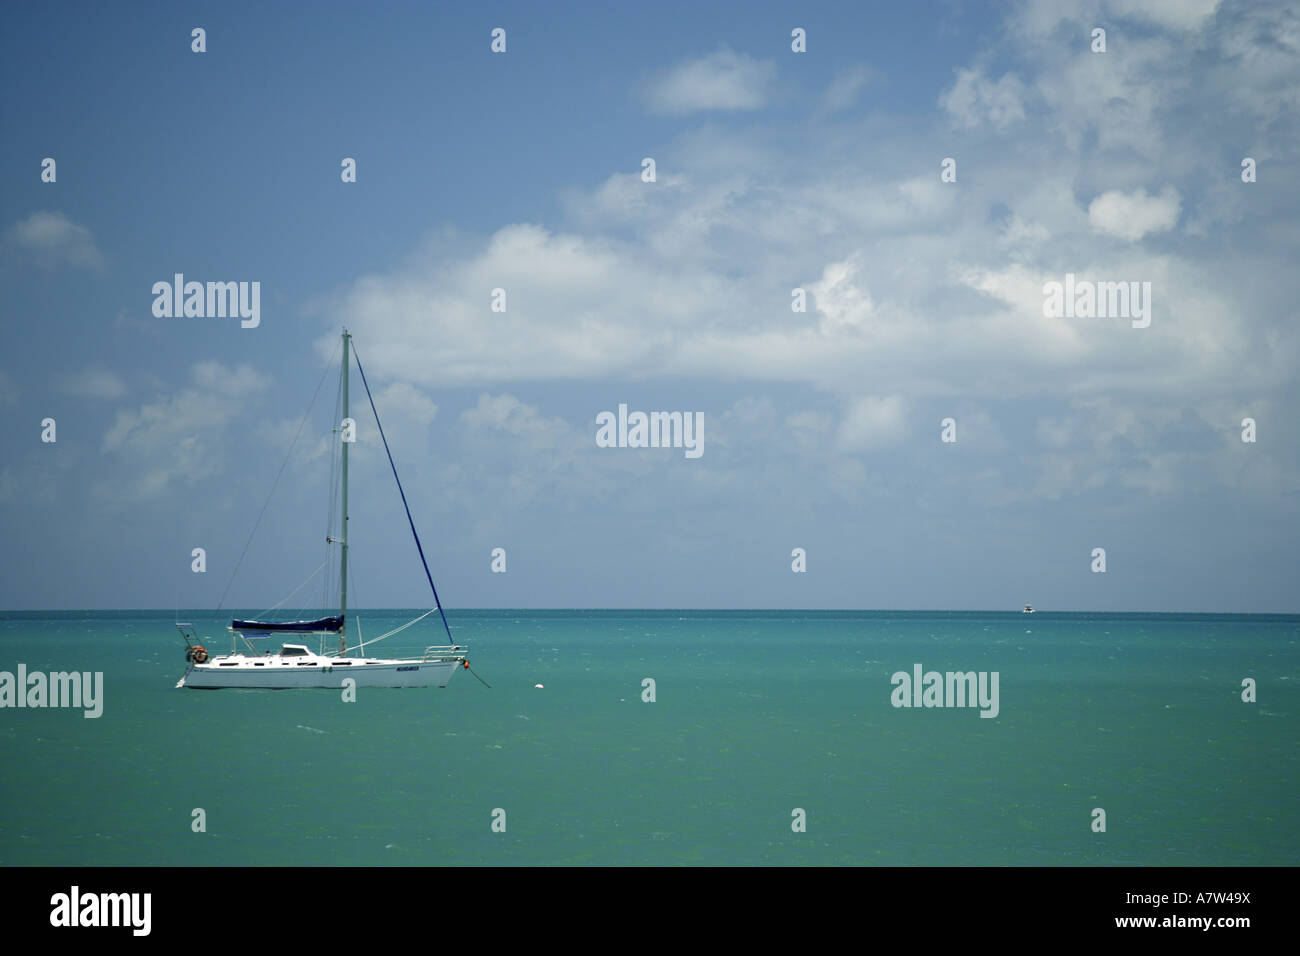 Boat Sailing Sailboat Boat Ship Sea Travel Travels Journey